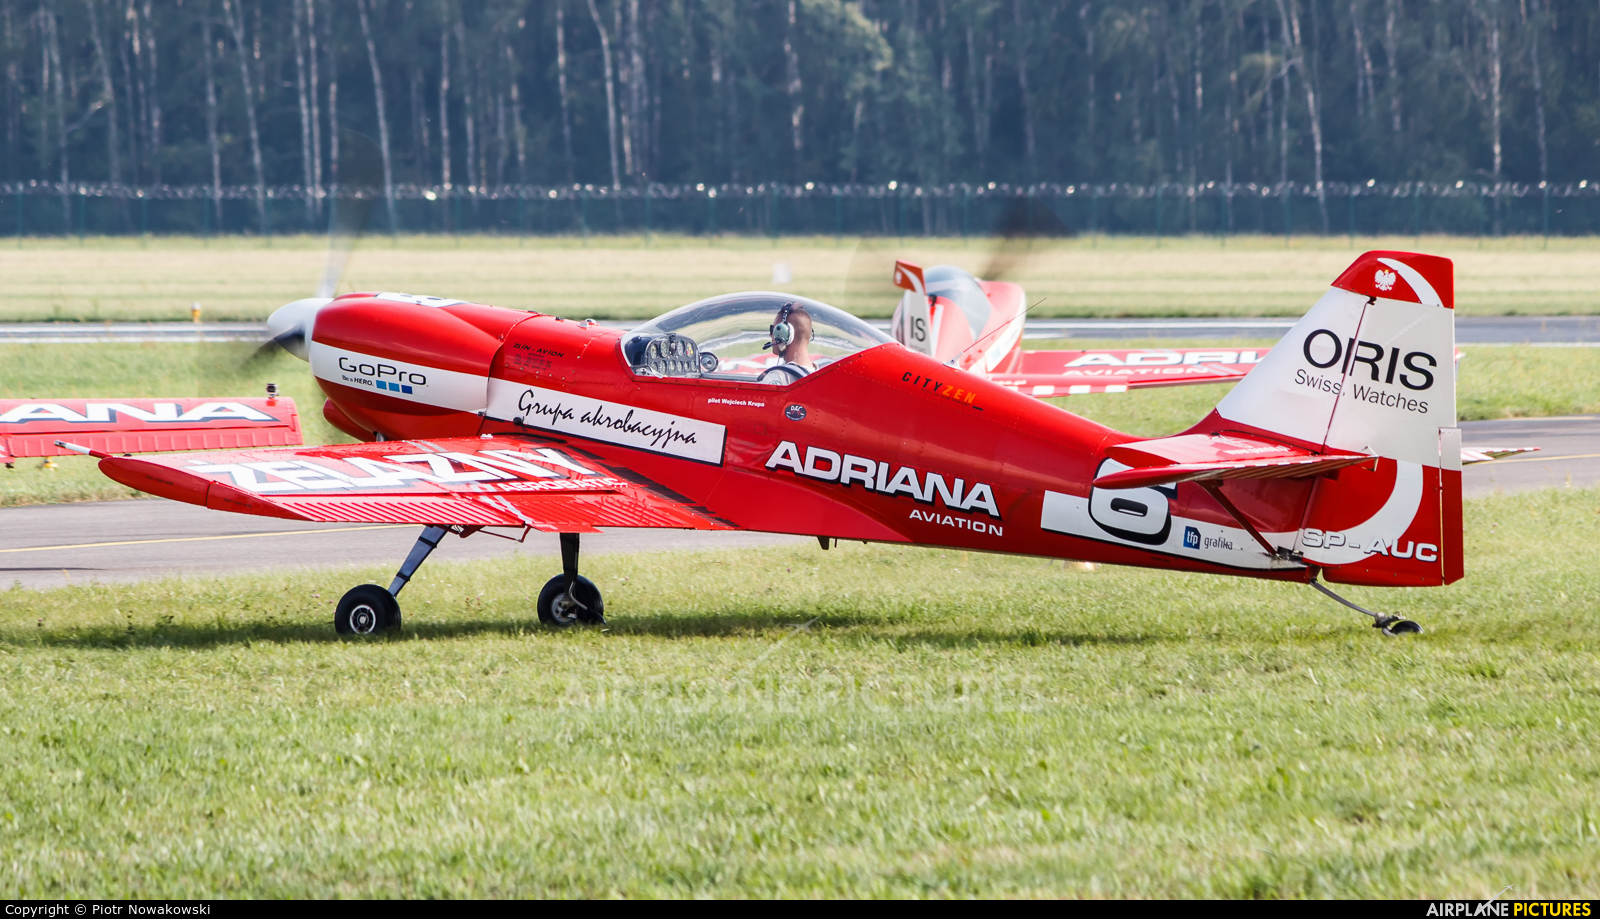 Grupa Akrobacyjna Żelazny - Acrobatic Group SP-AUC aircraft at Radom - Sadków